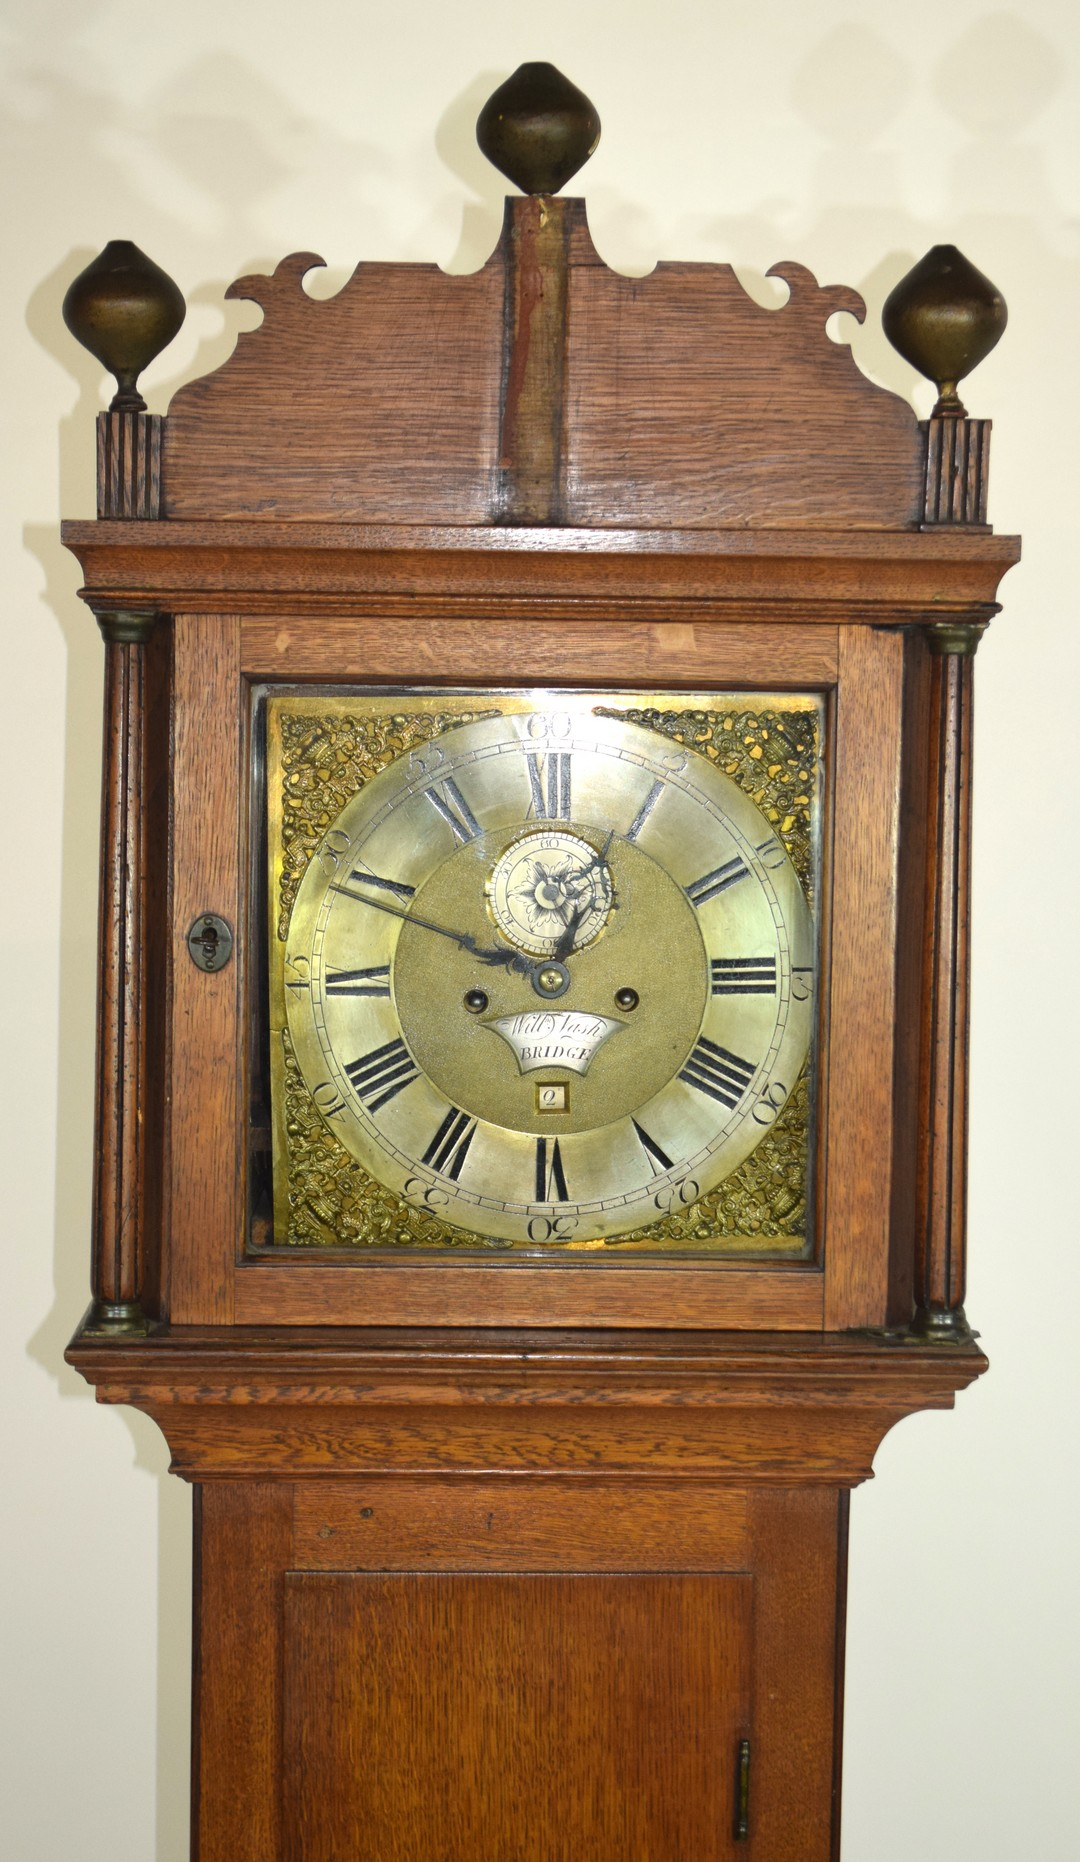 William Nash, Bridge, (Kent) 18th century oak cased longcase clock, the brass and silvered face with - Image 2 of 4